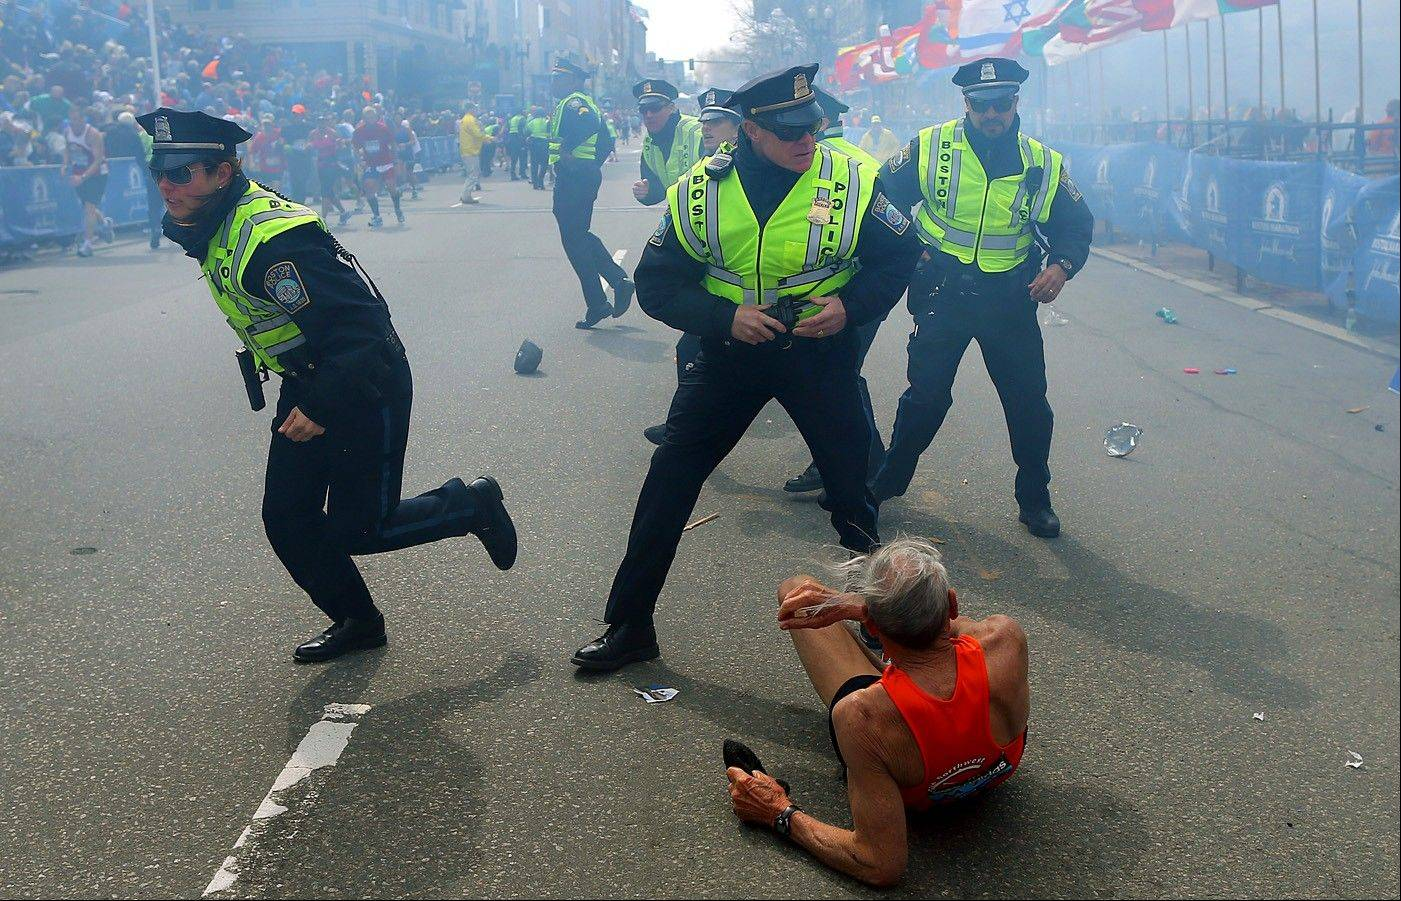 Bill Iffrig, 78, lies on the ground Monday as police officers react to a second explosion at the finish line of the Boston Marathon in Boston. Iffrig, of Lake Stevens, Wash., was running his third Boston Marathon and near the finish line when he was knocked down by one of the two bomb blasts.